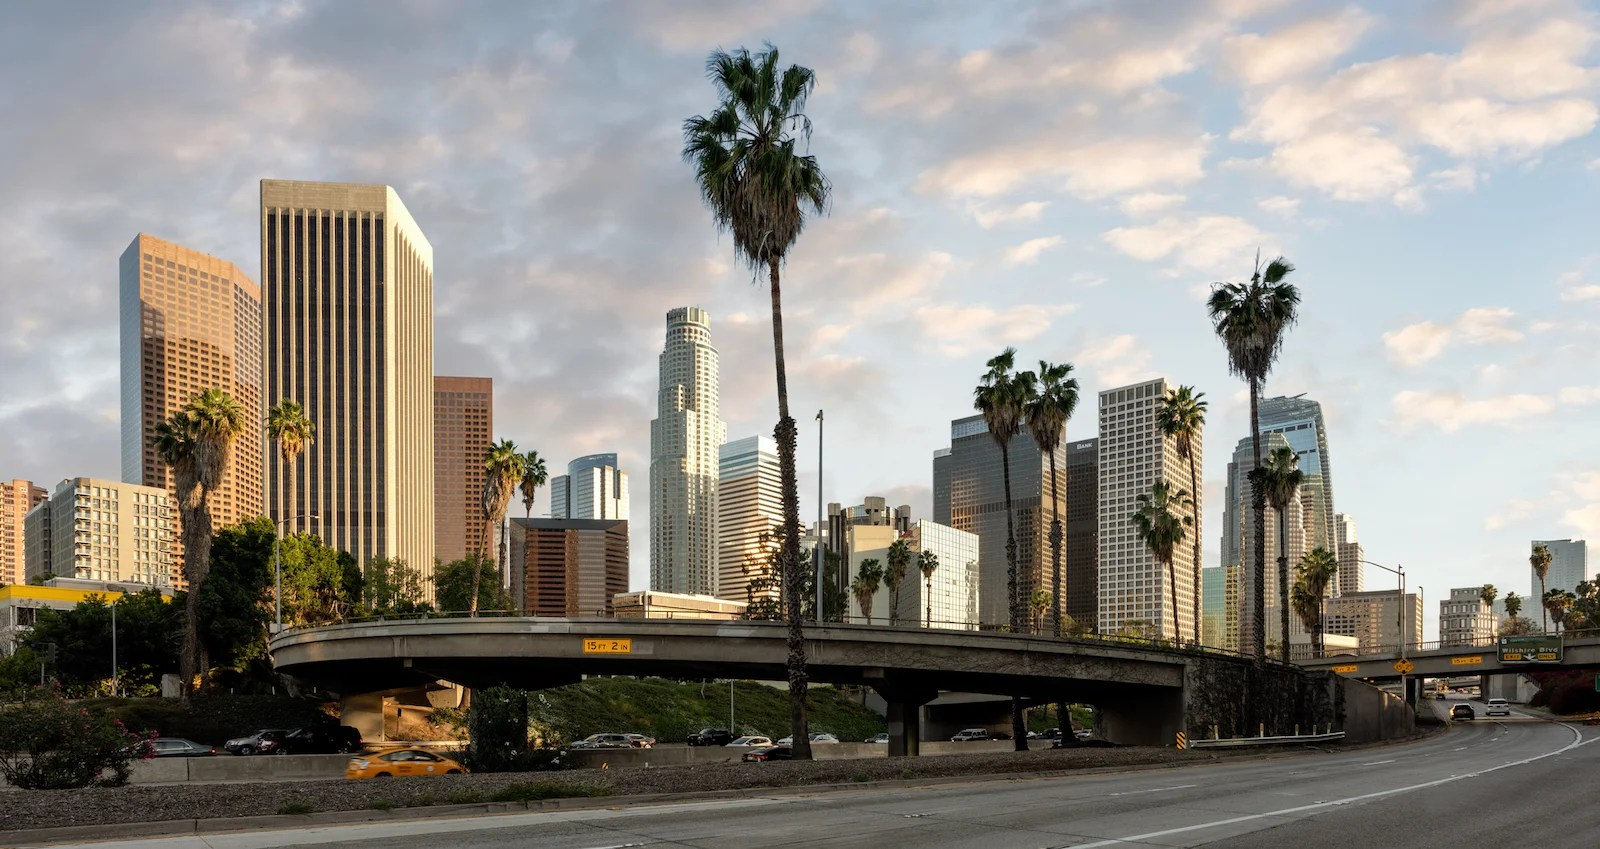 Second Cities: The best destinations to visit from Los Angeles